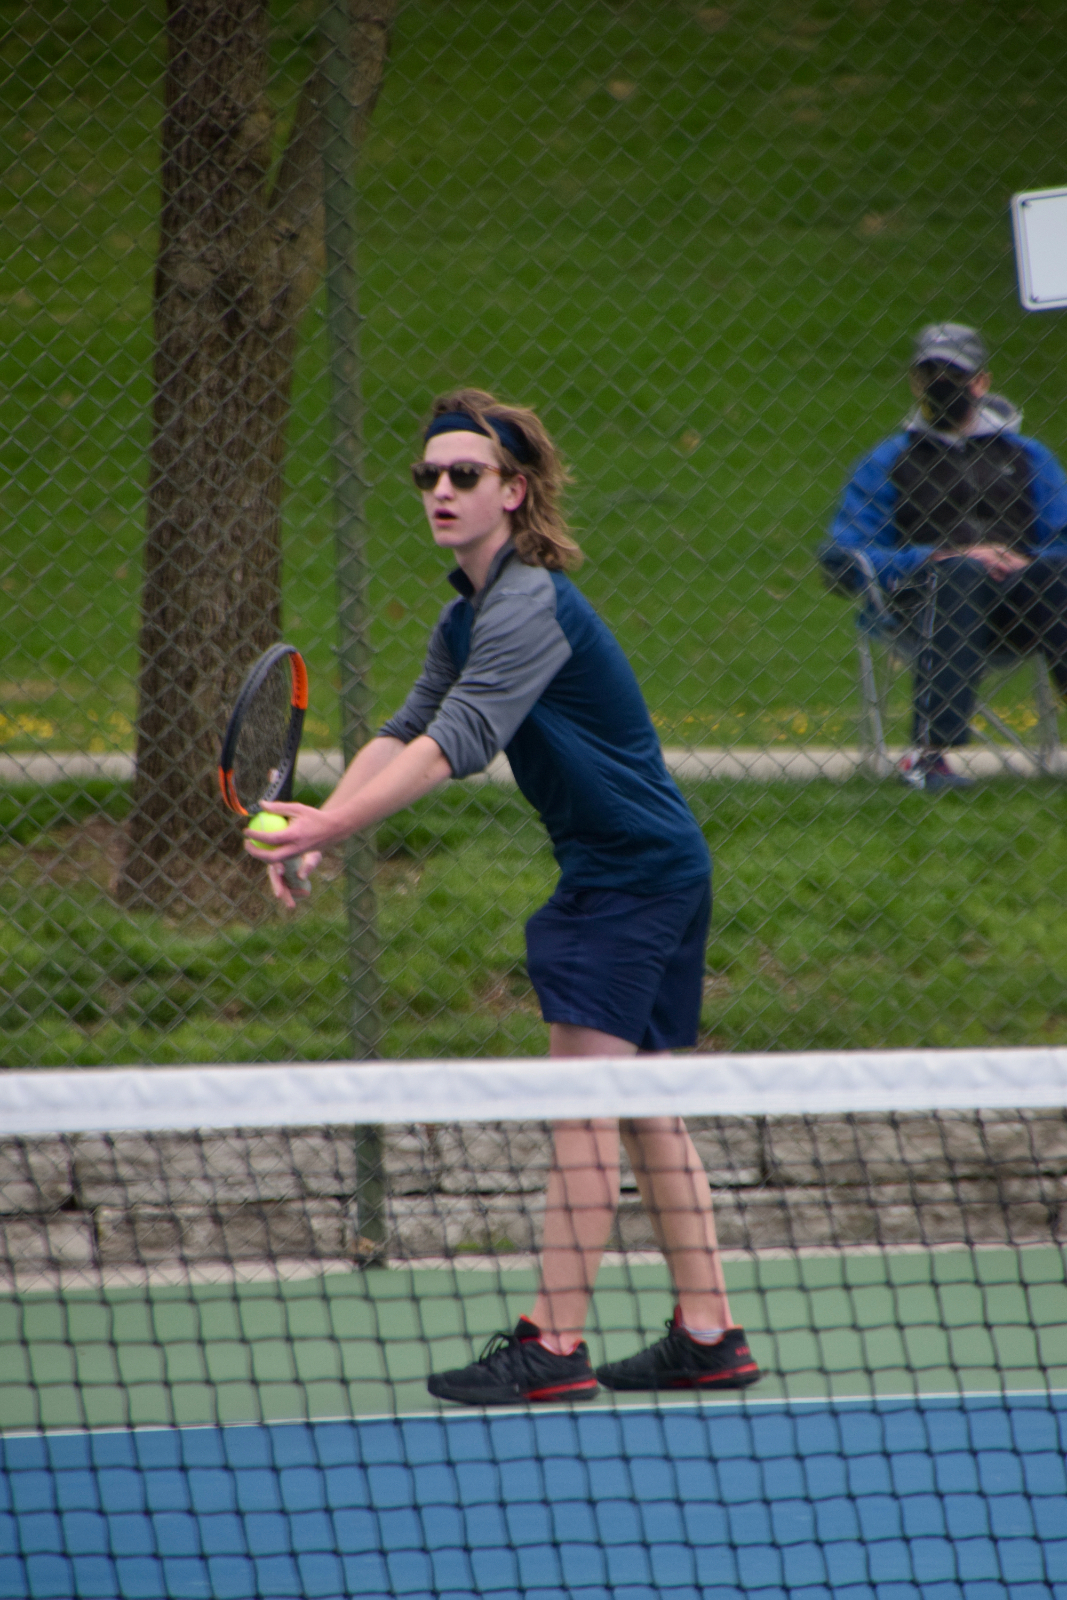 Boys Tennis vs. Bloom Carroll 3.31.21